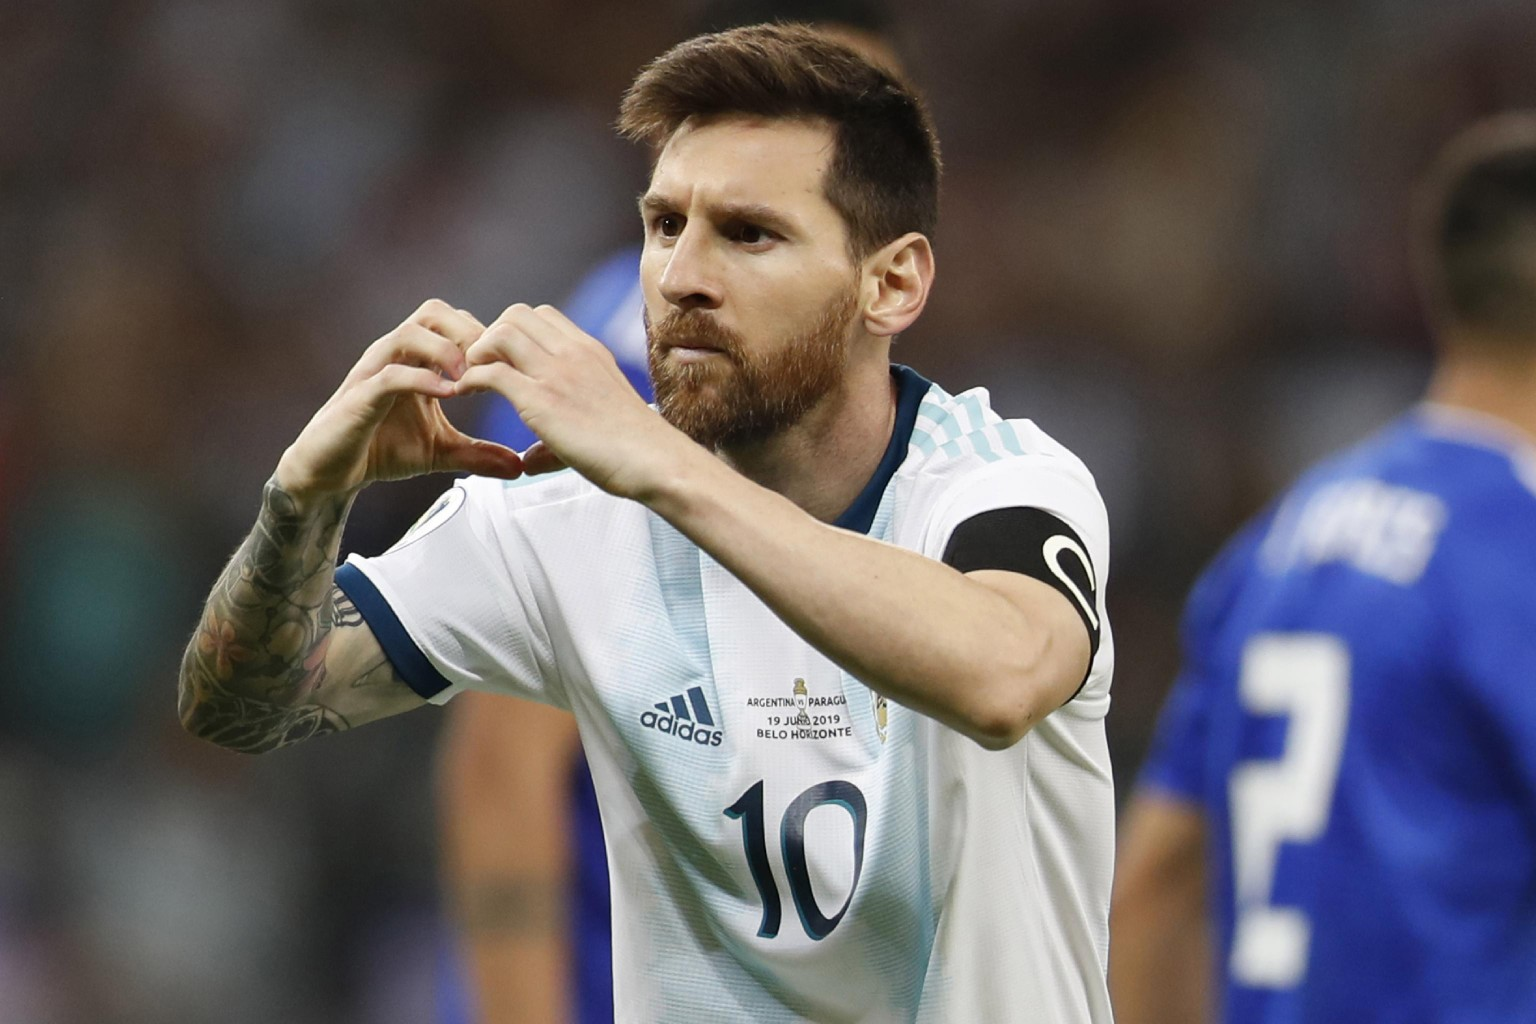 Lionel Messi returns to Argentina squad after ban